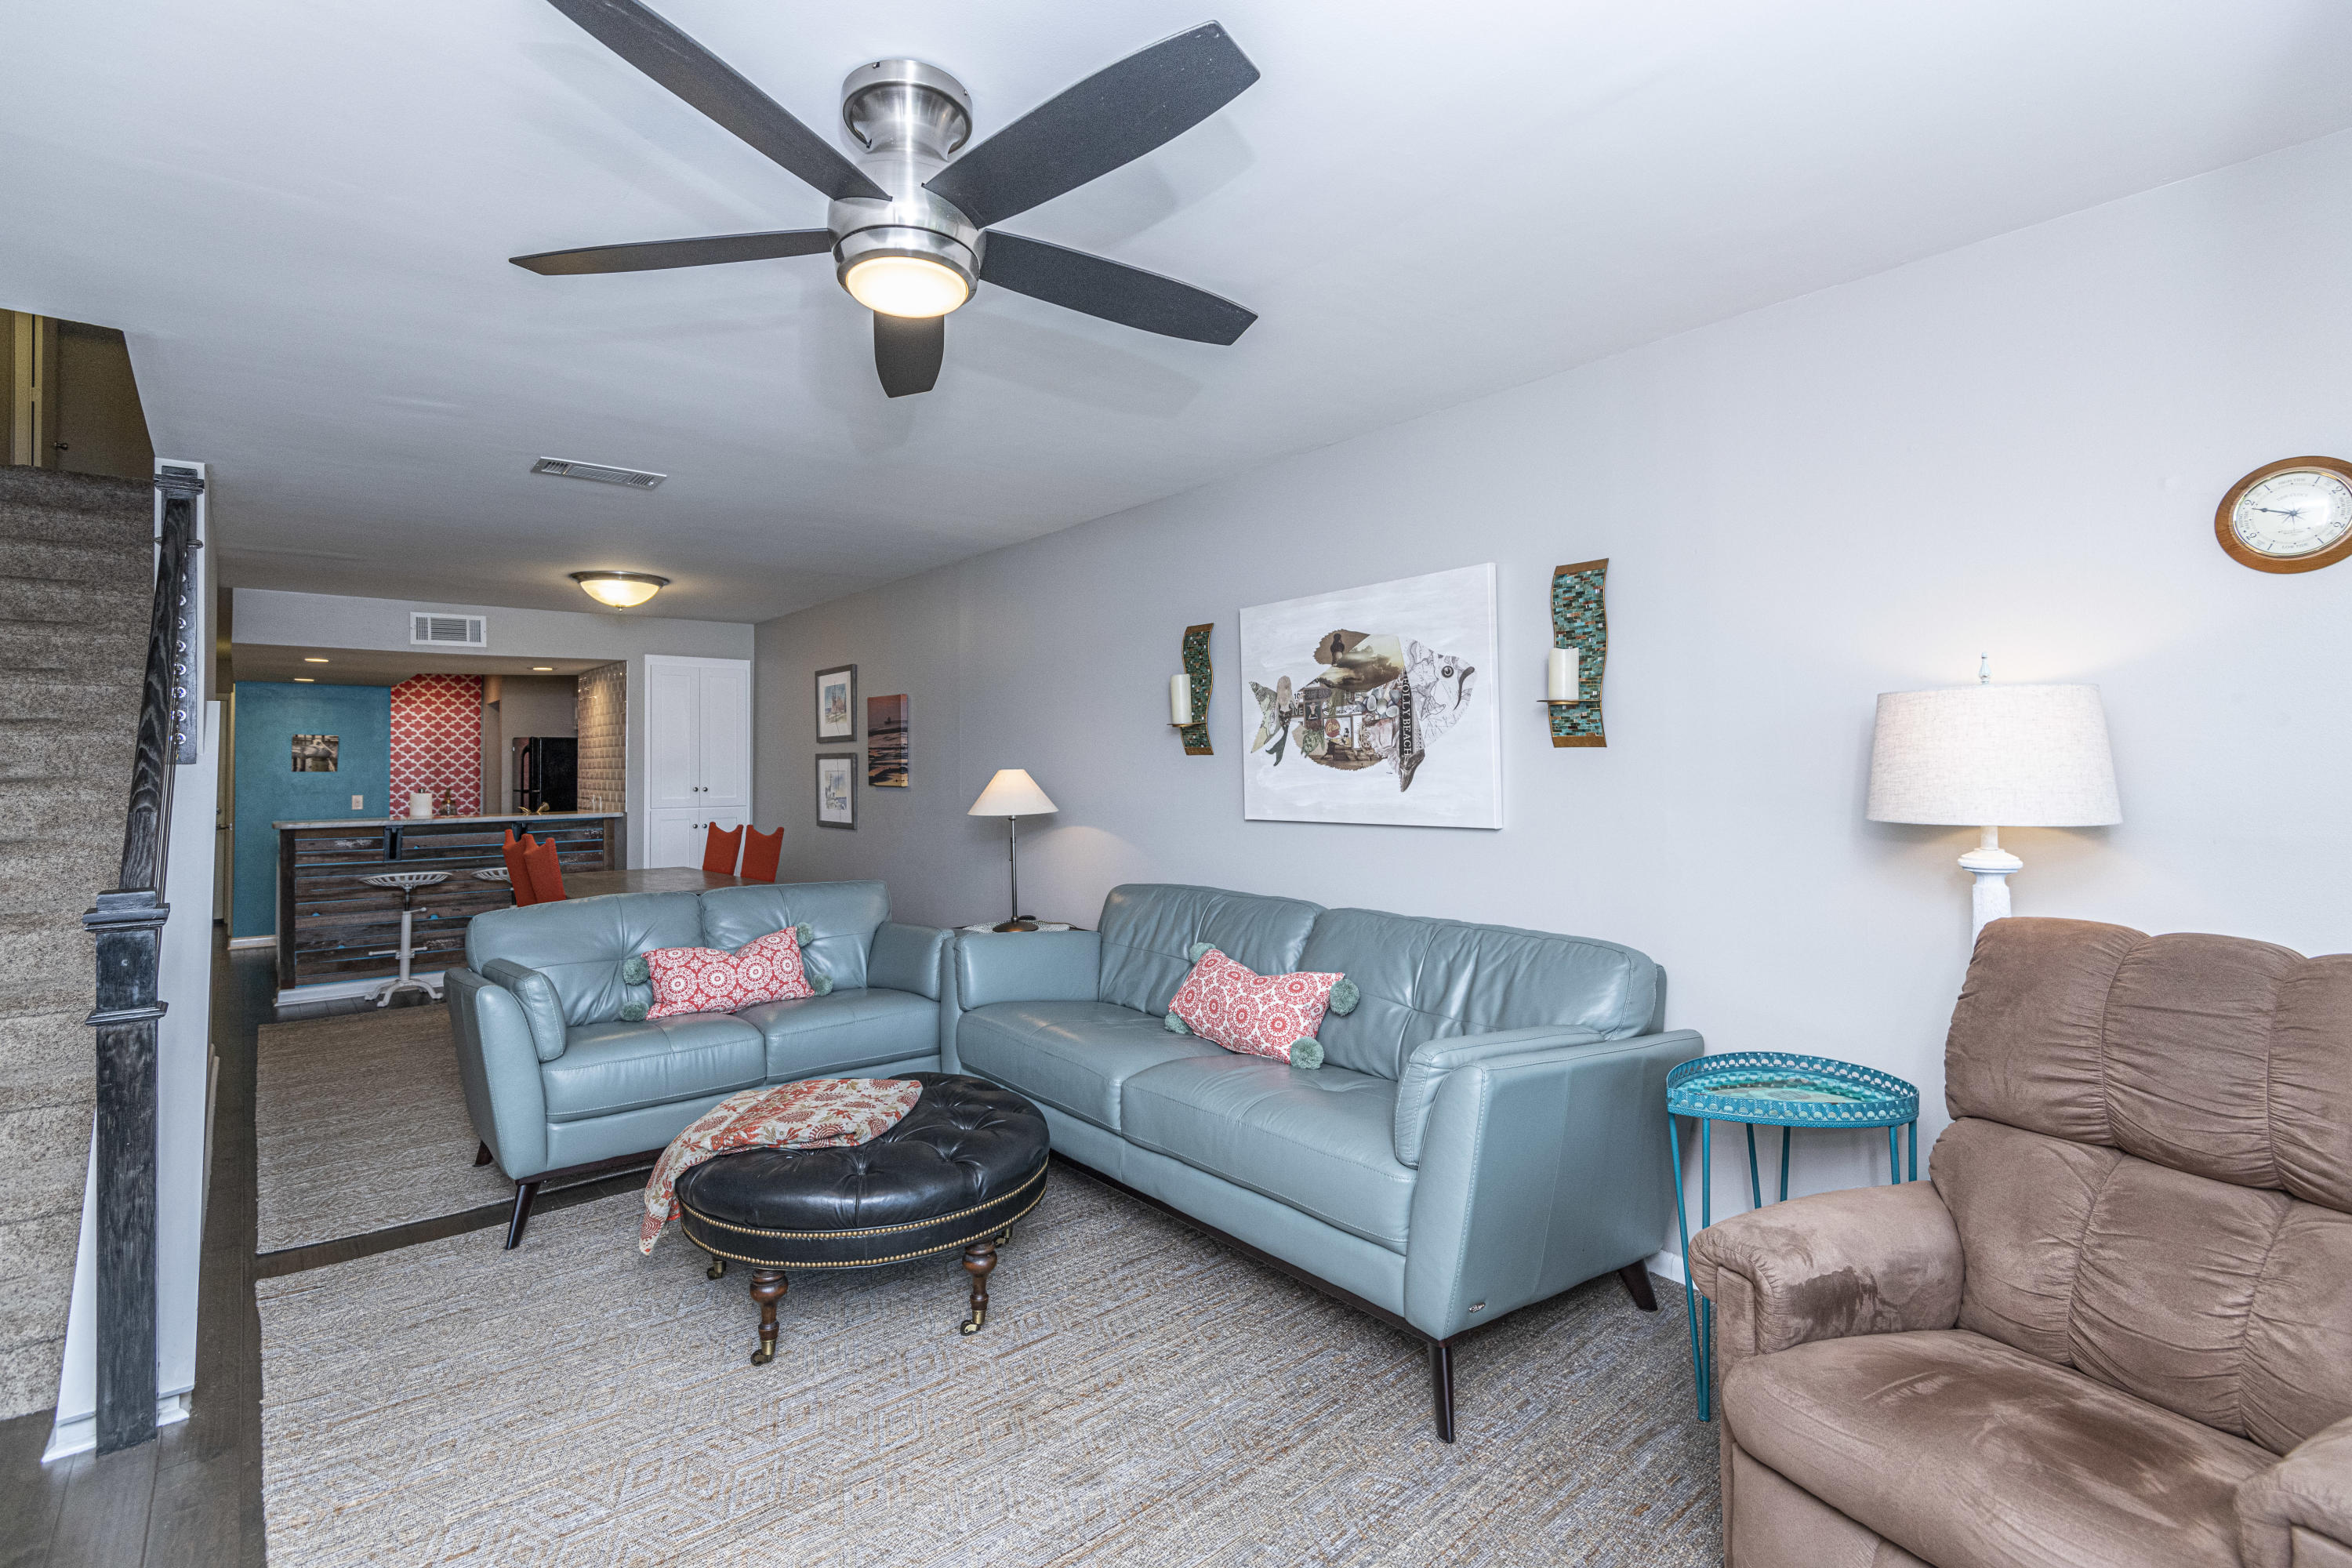 Mariners Cay Homes For Sale - 71 Mariners Cay, Folly Beach, SC - 3